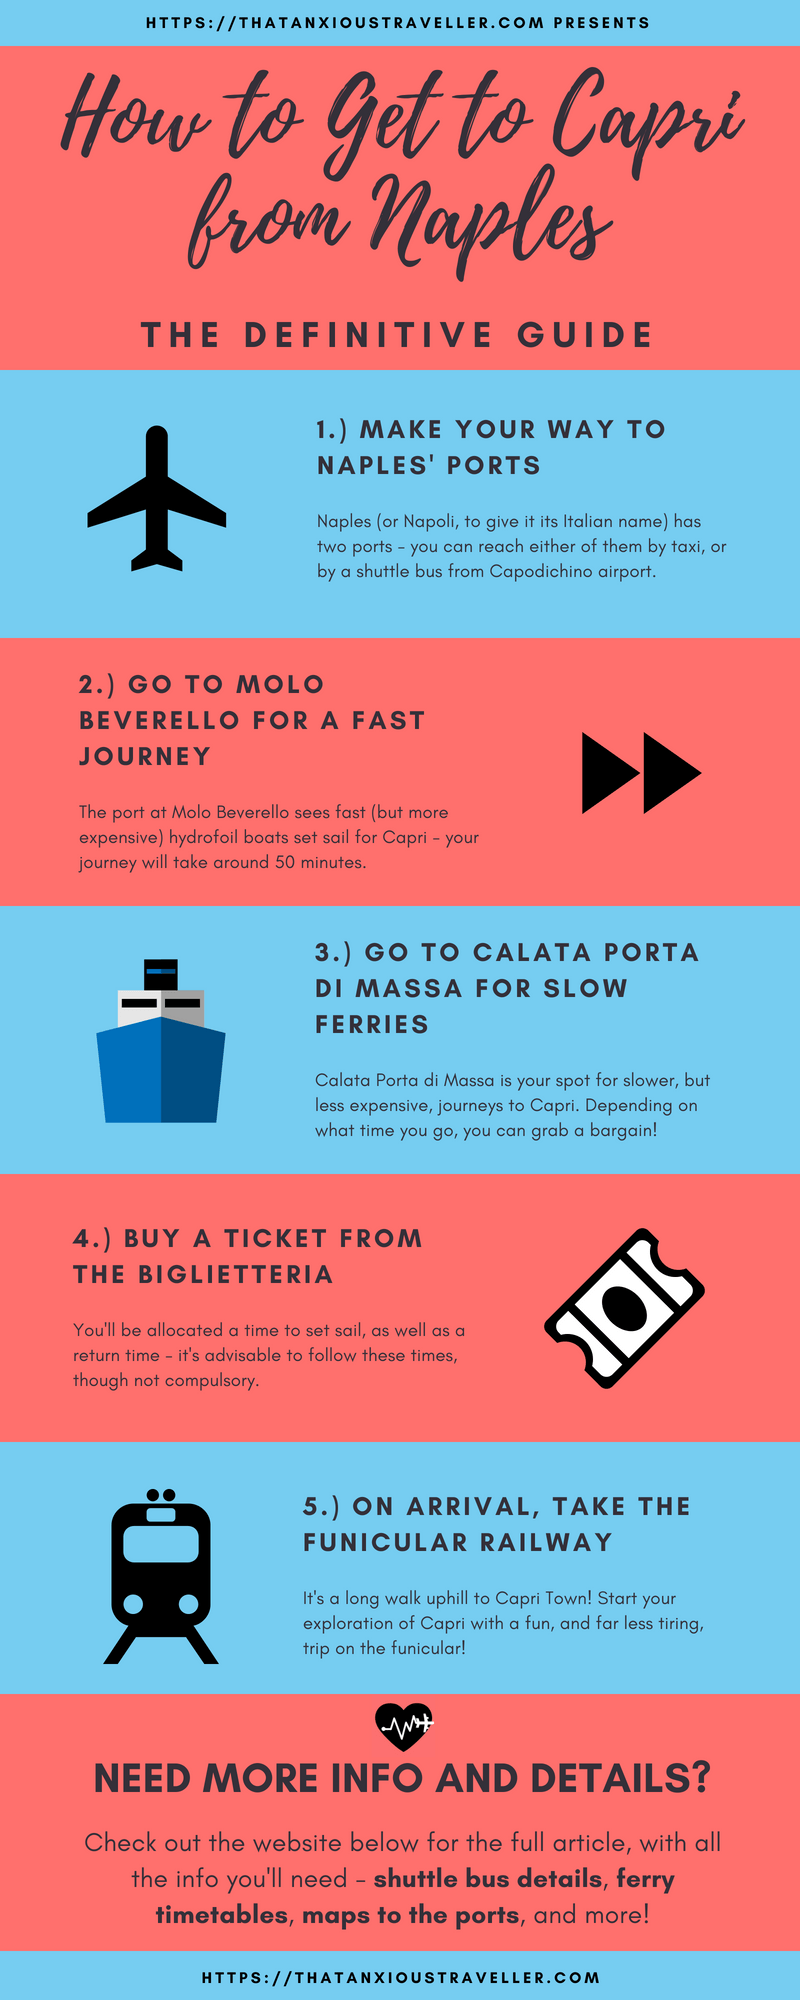 How to get to Capri from Naples infographic